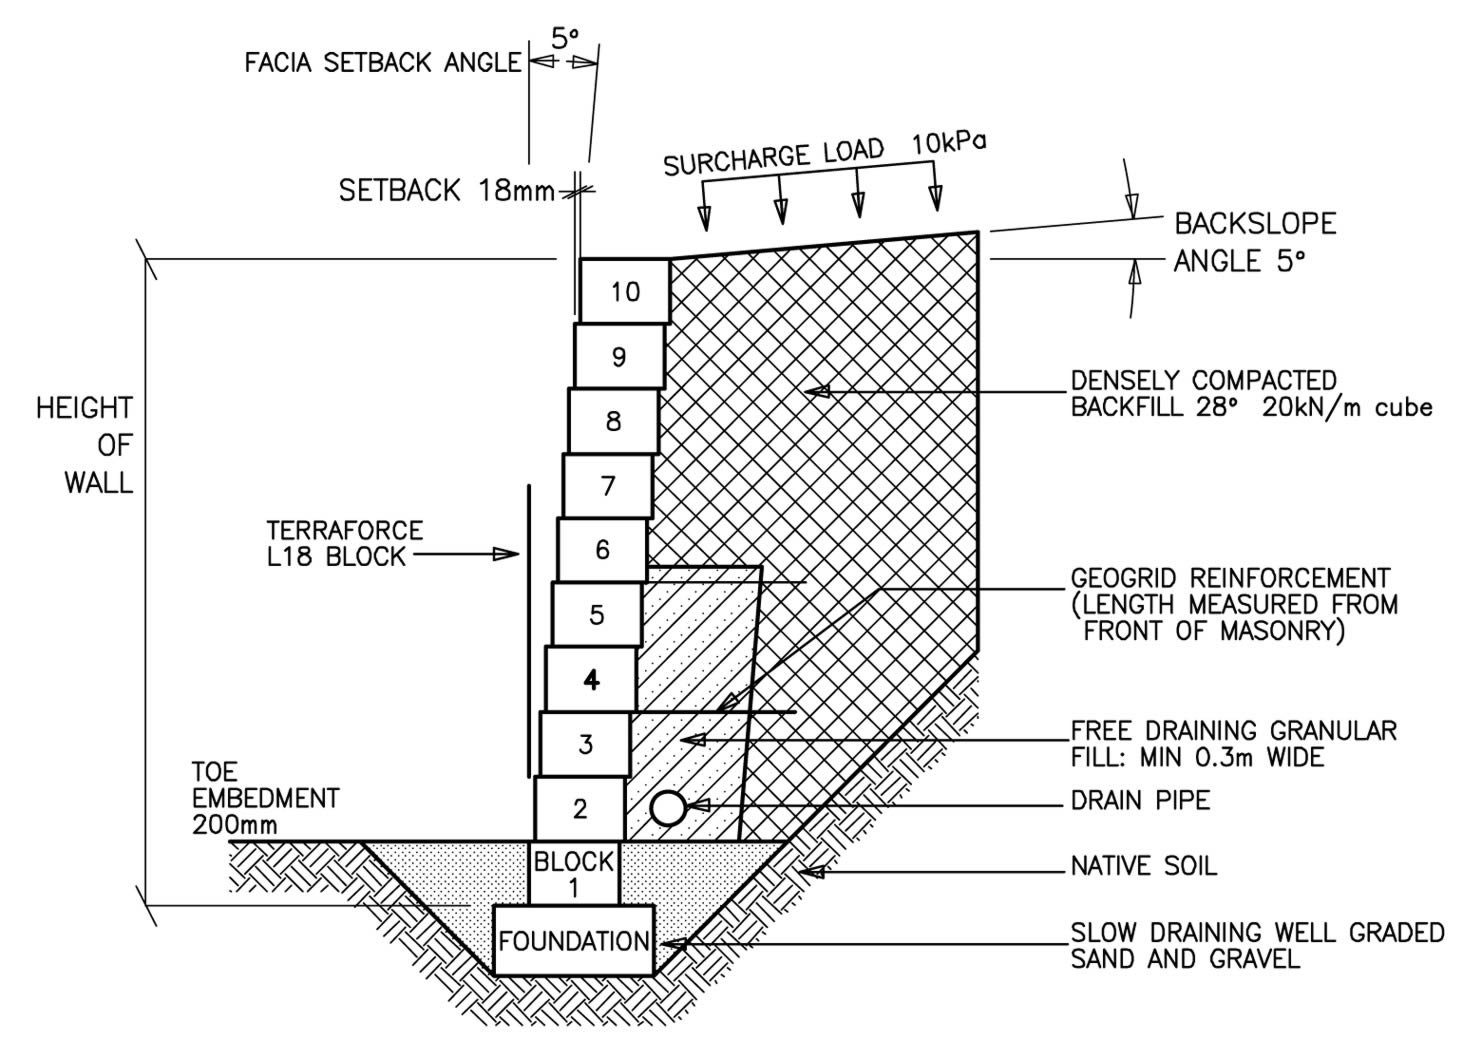 Concrete Block Retaining Wall Design modern 4 concrete retaining wall design example on retaining wall design example The Maximum Wall Heights For A Single Skin Mass Gravity Block Retaining Wall System